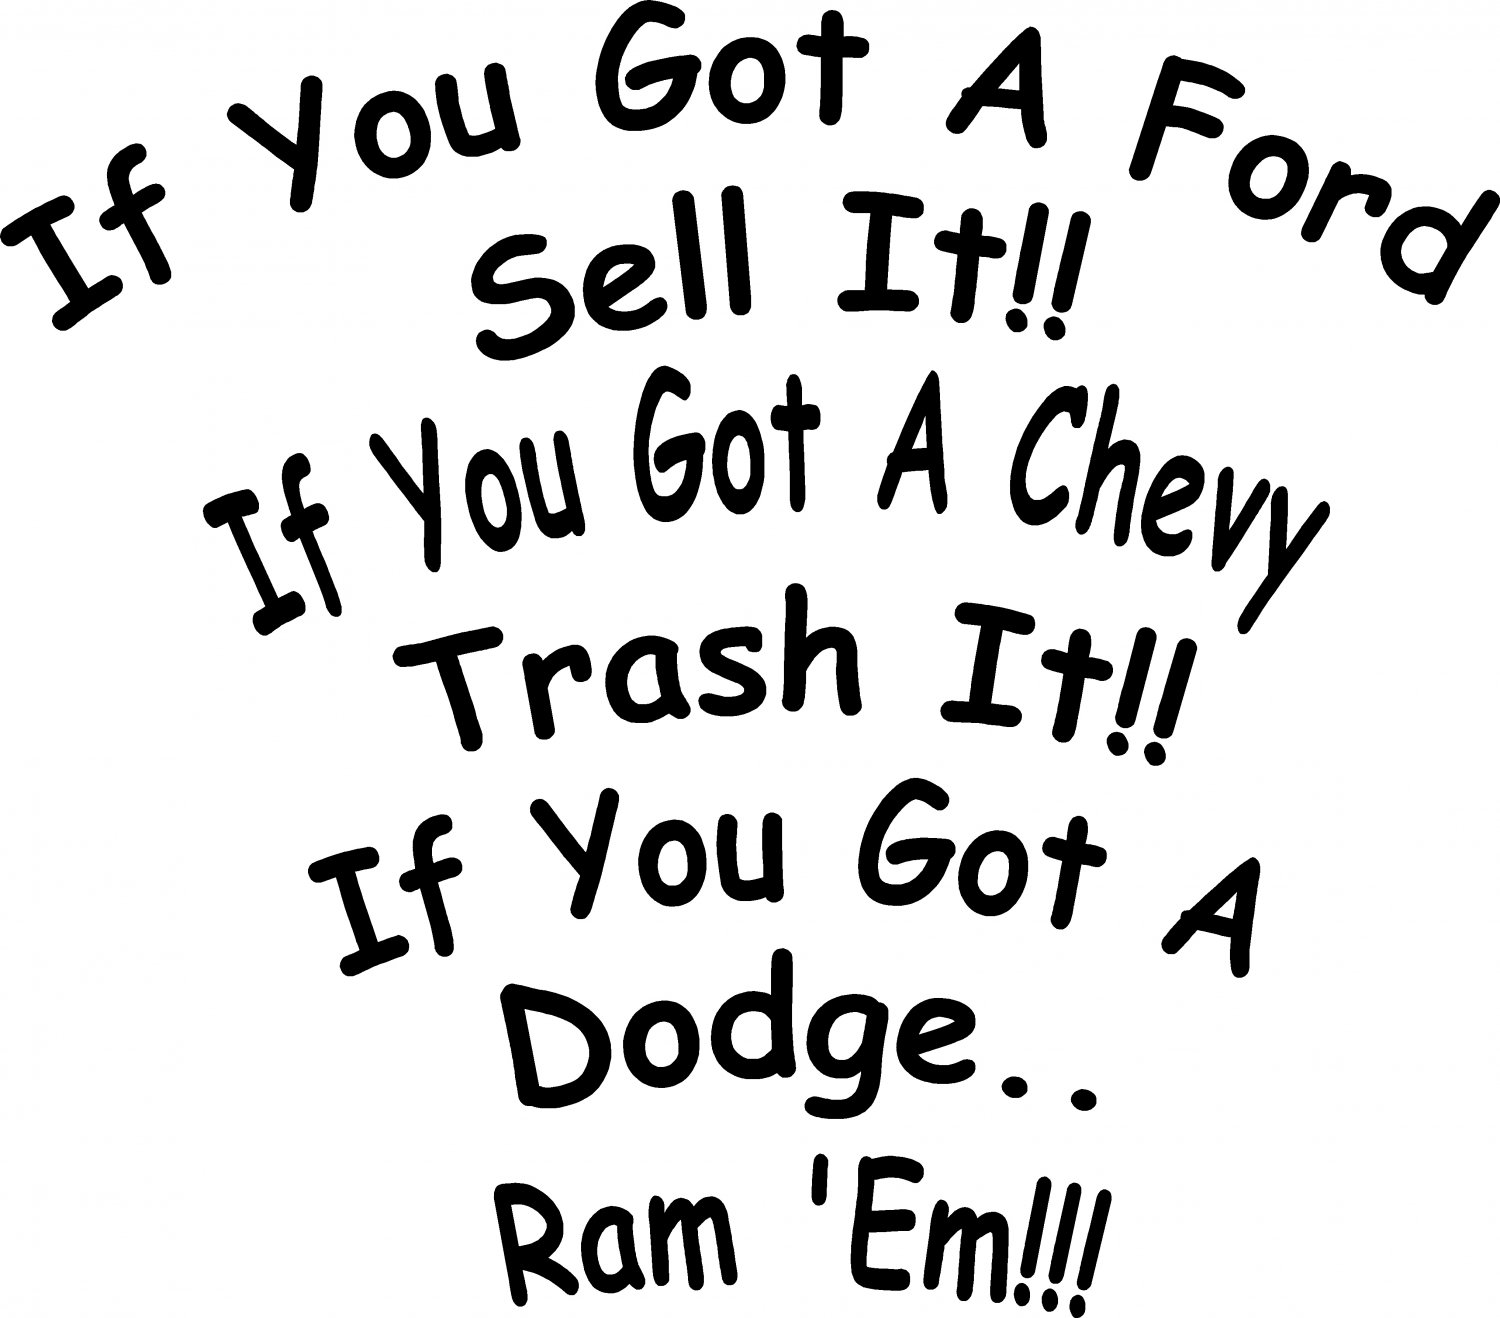 Dodge Truck Sayings And Quotes Quotesgram